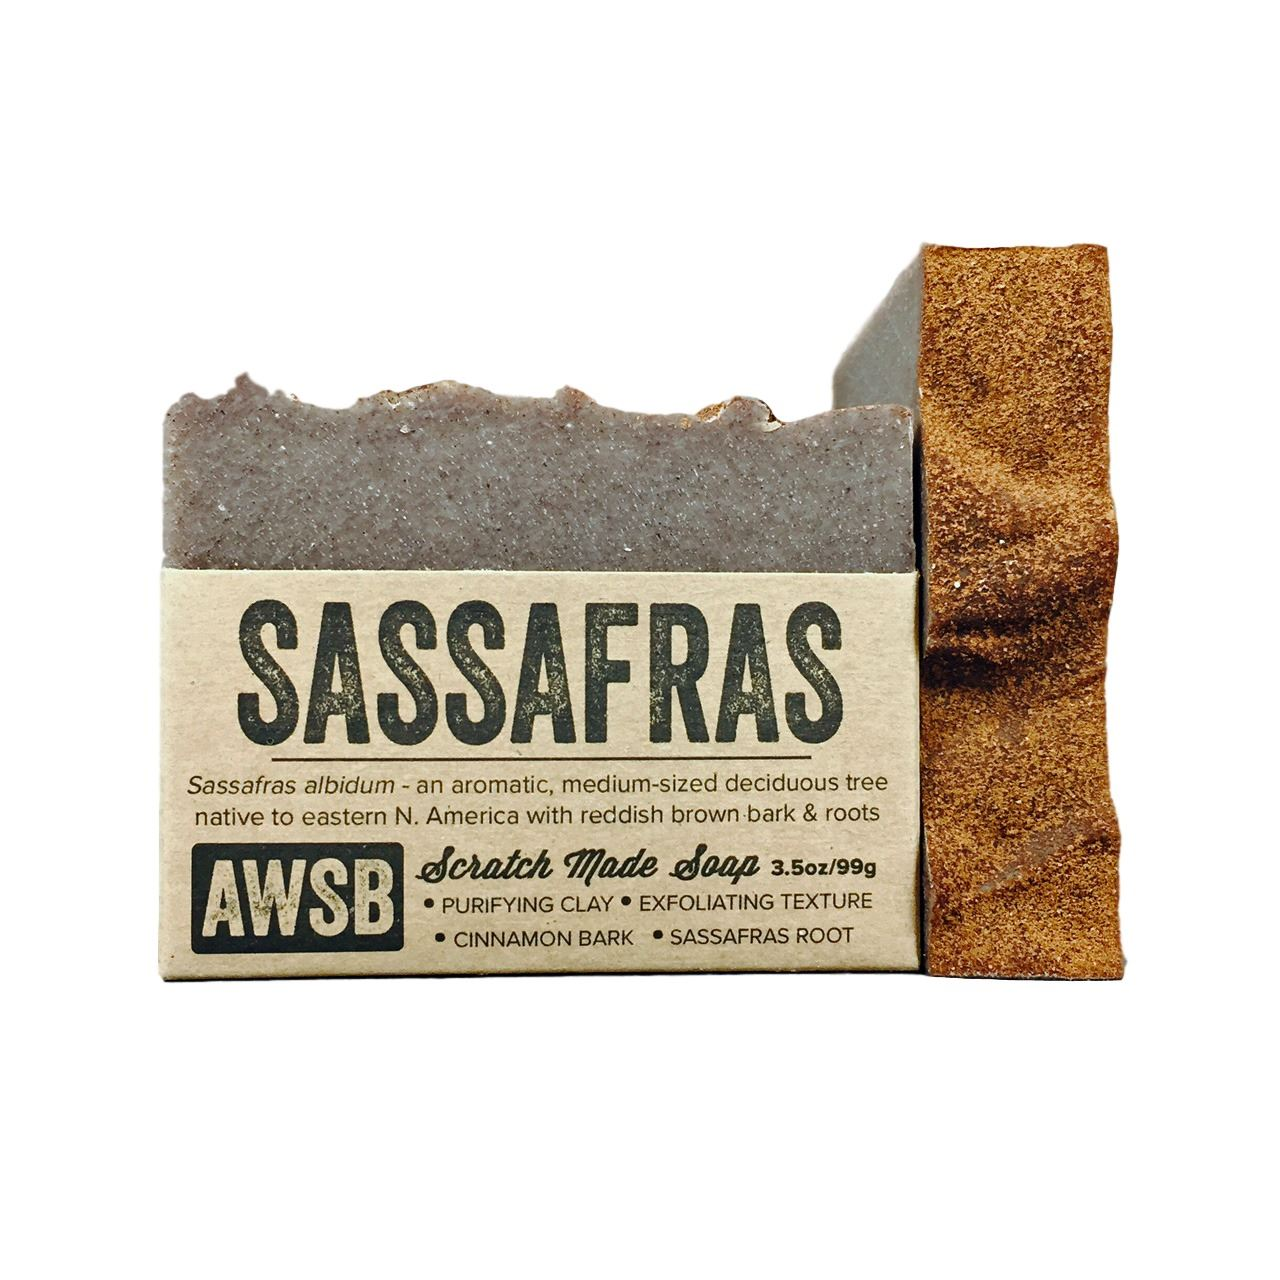 sassafras soap sassafras,cinnamon,spice,soap,natural,handmade,organic,brown,exfoliating,essential oils,spicy,cinnamon bark,root,vegetable oils